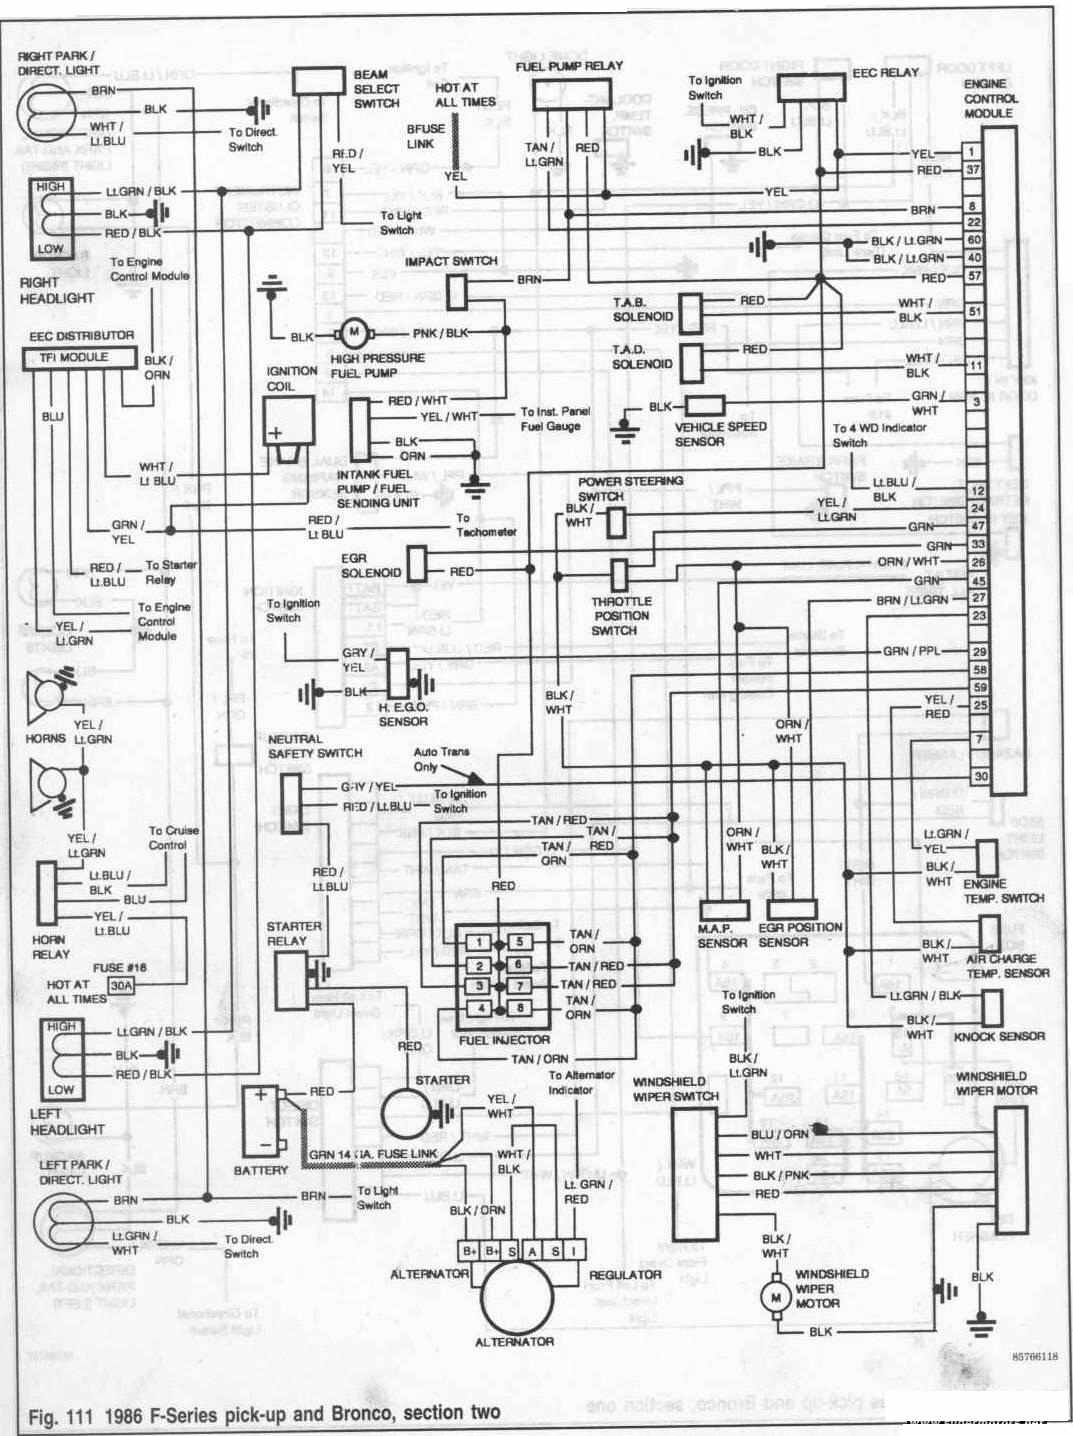 1978 Ford Bronco Wiring Diagram from 3.bp.blogspot.com